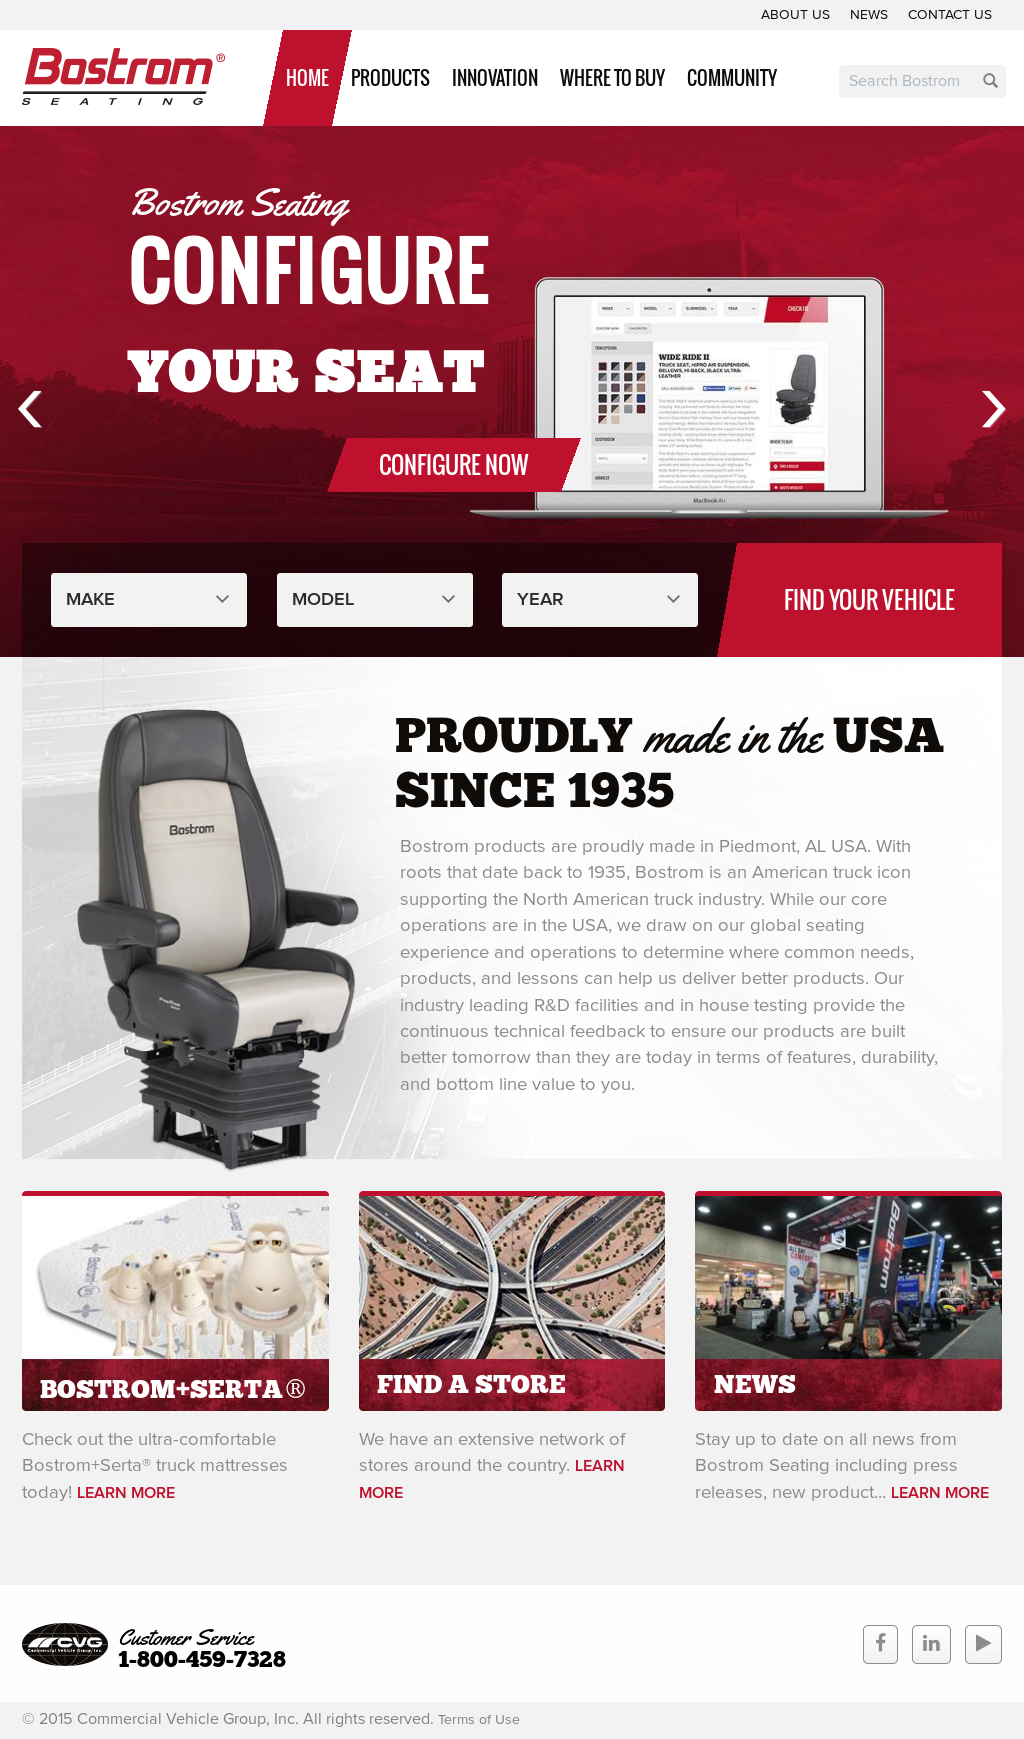 Bostrom Seating Competitors, Revenue and Employees - Owler Company